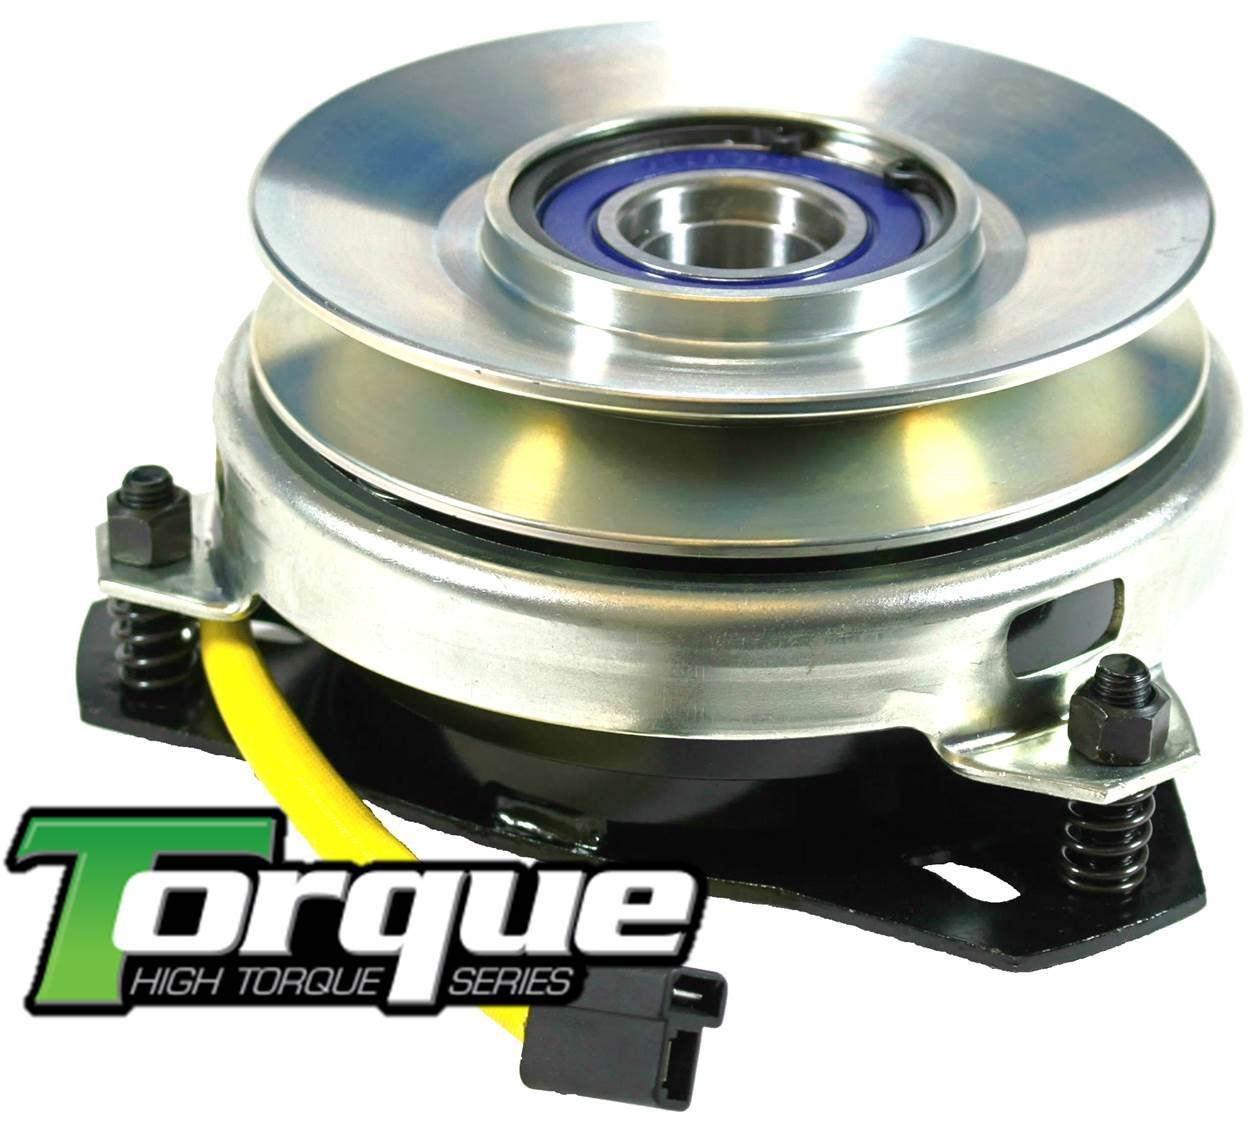 PTO - Embrague eléctrico para John Deere F510, F525 Mower Tractor AM125082, AM126710 Warner 5215-117: Amazon.es: Amazon.es